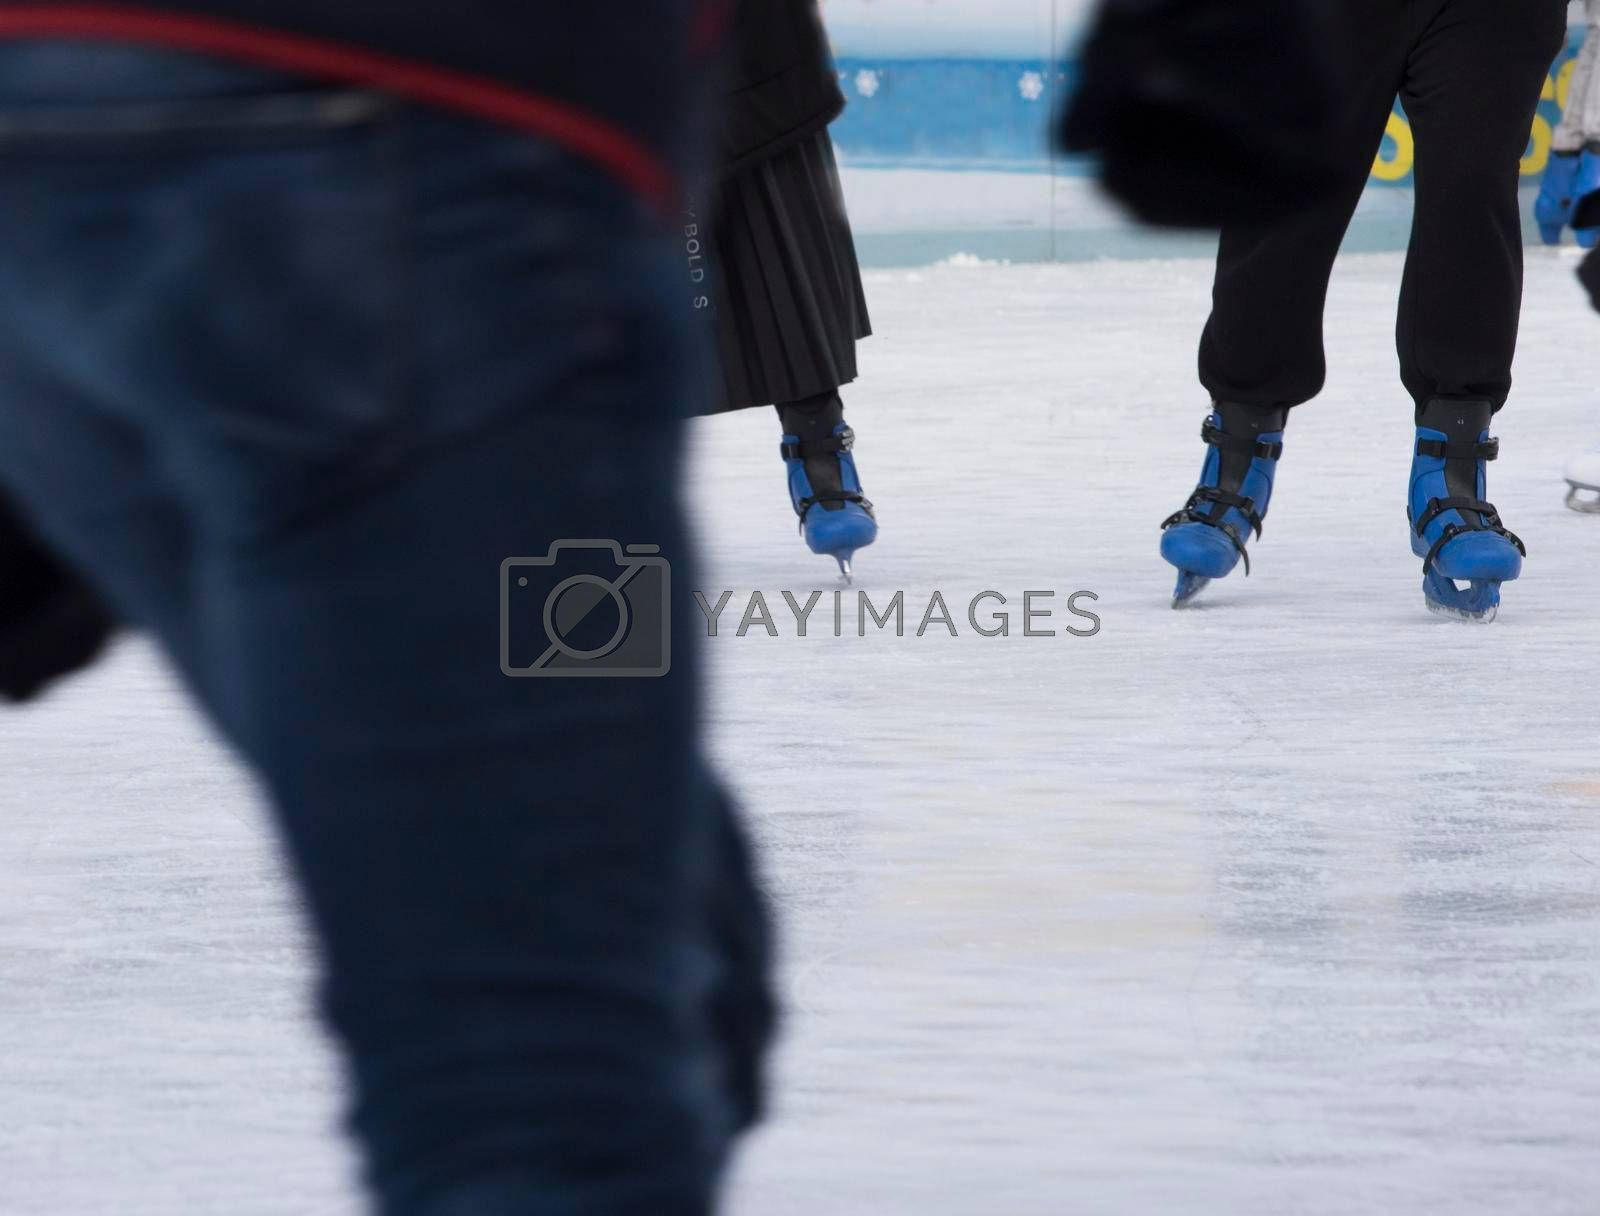 ice skating and sports in winter on a skating rink